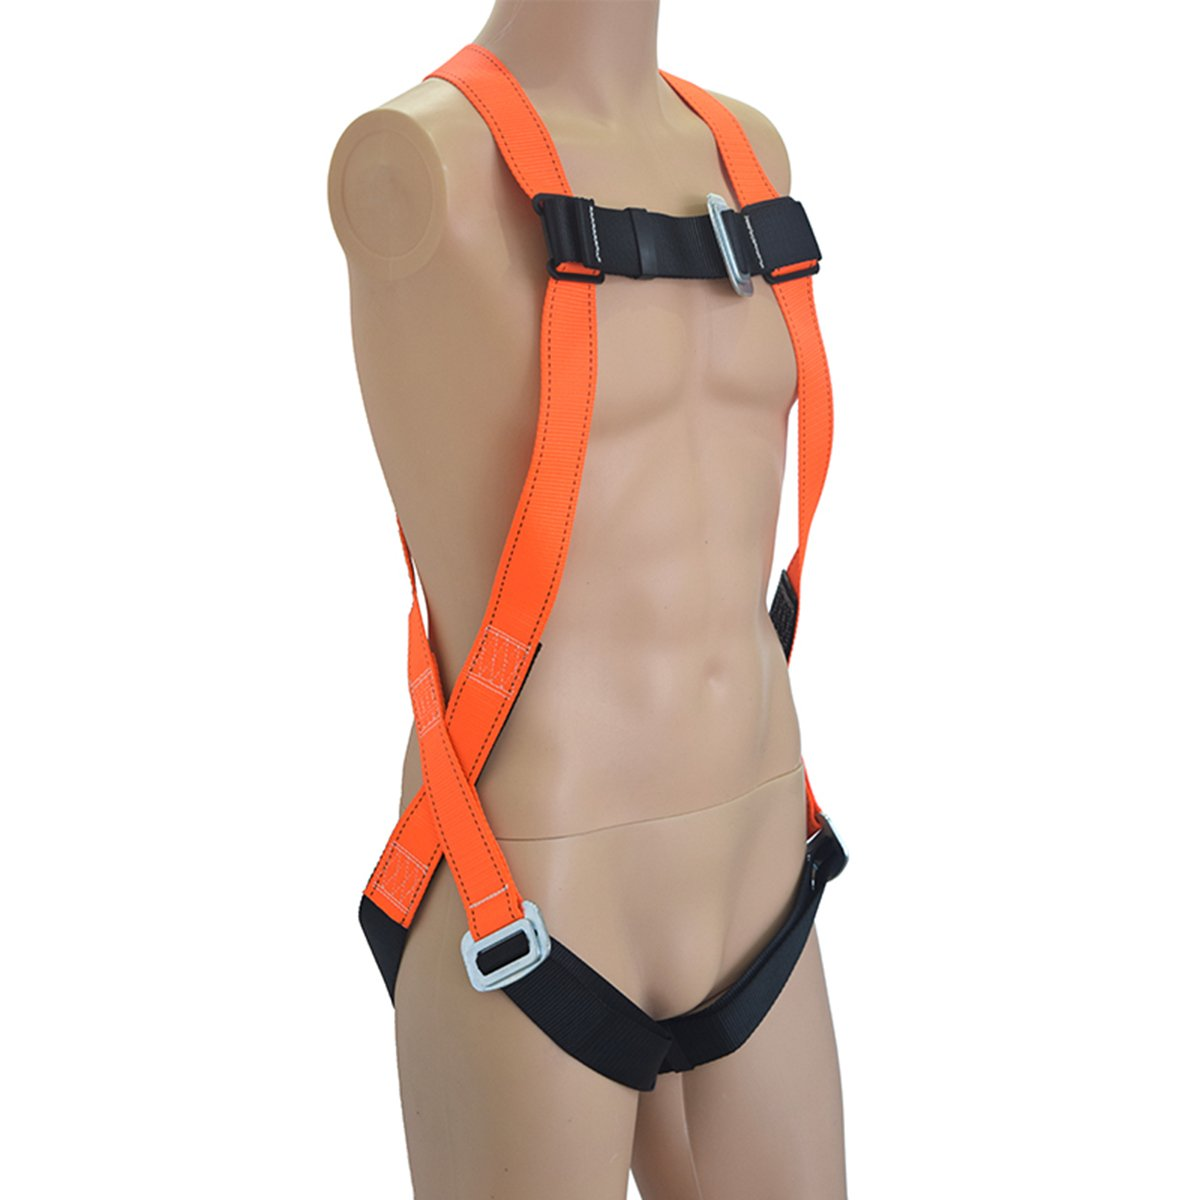 KSEIBI 421024 Full Body Fall Protection Light Weight Safety Harness w D-Ring and Chest Pass Thru Buckles (LIGHT-PRO)